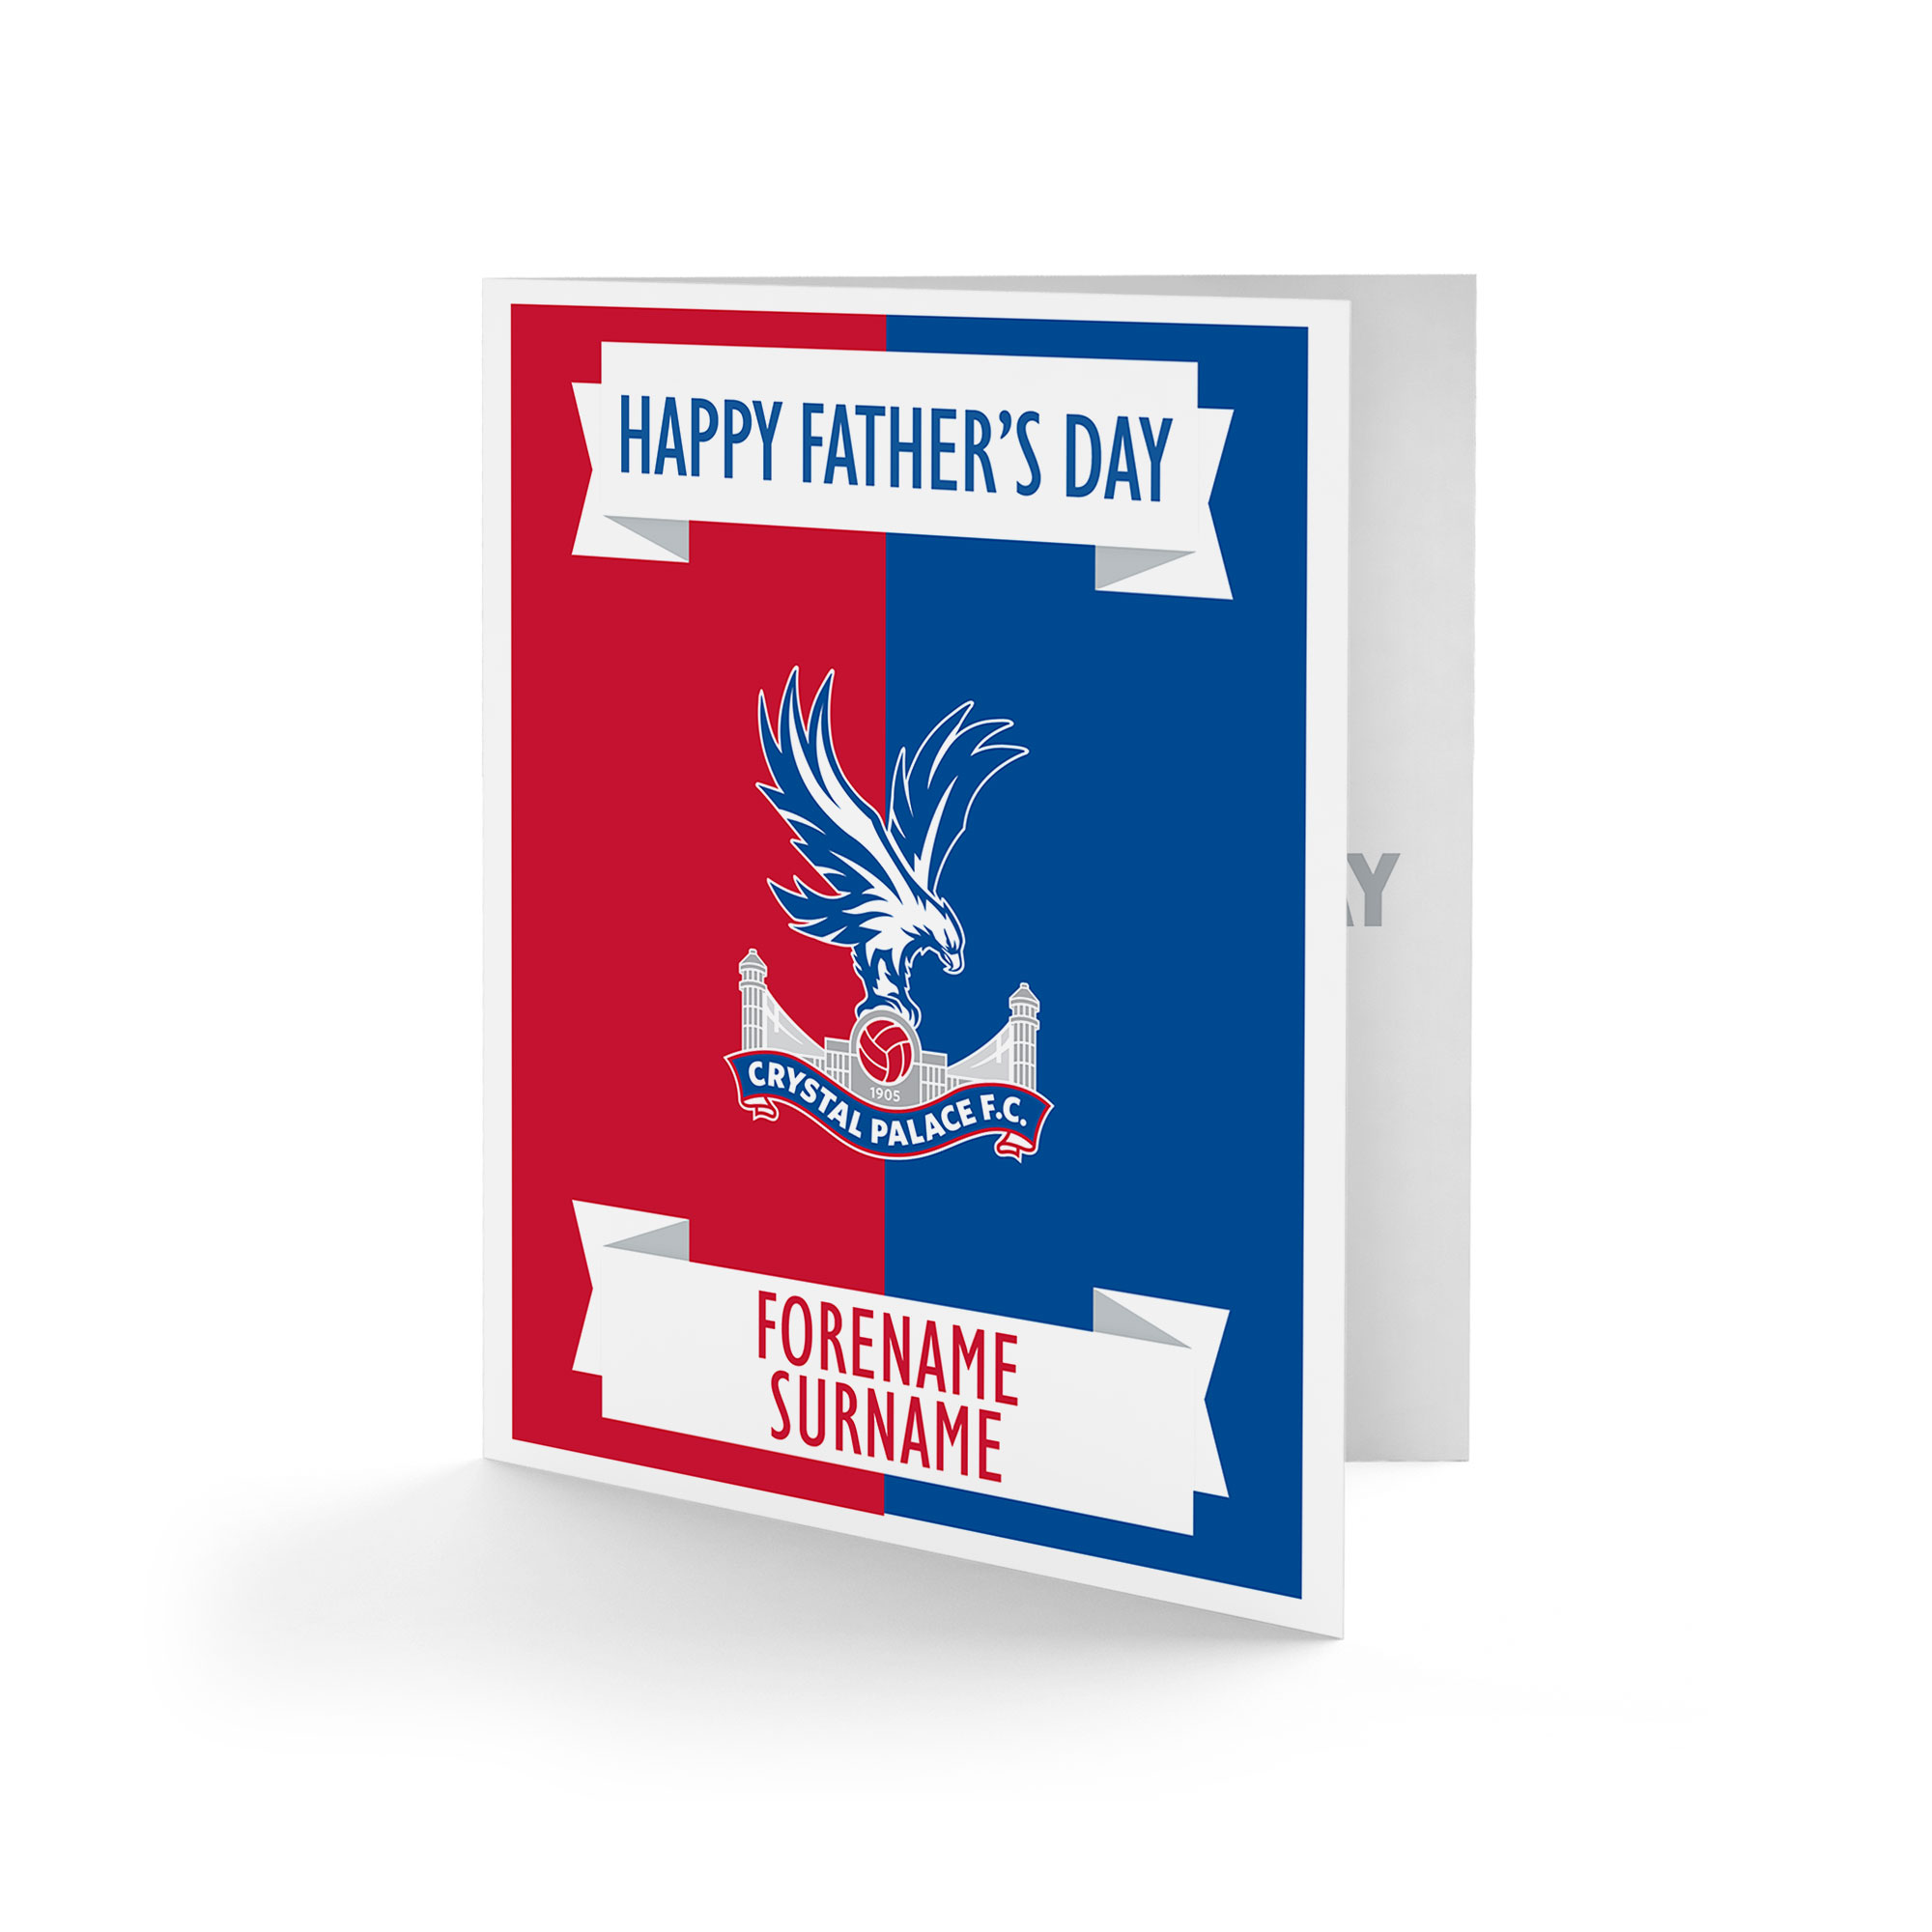 Crystal Palace FC Crest Father's Day Card